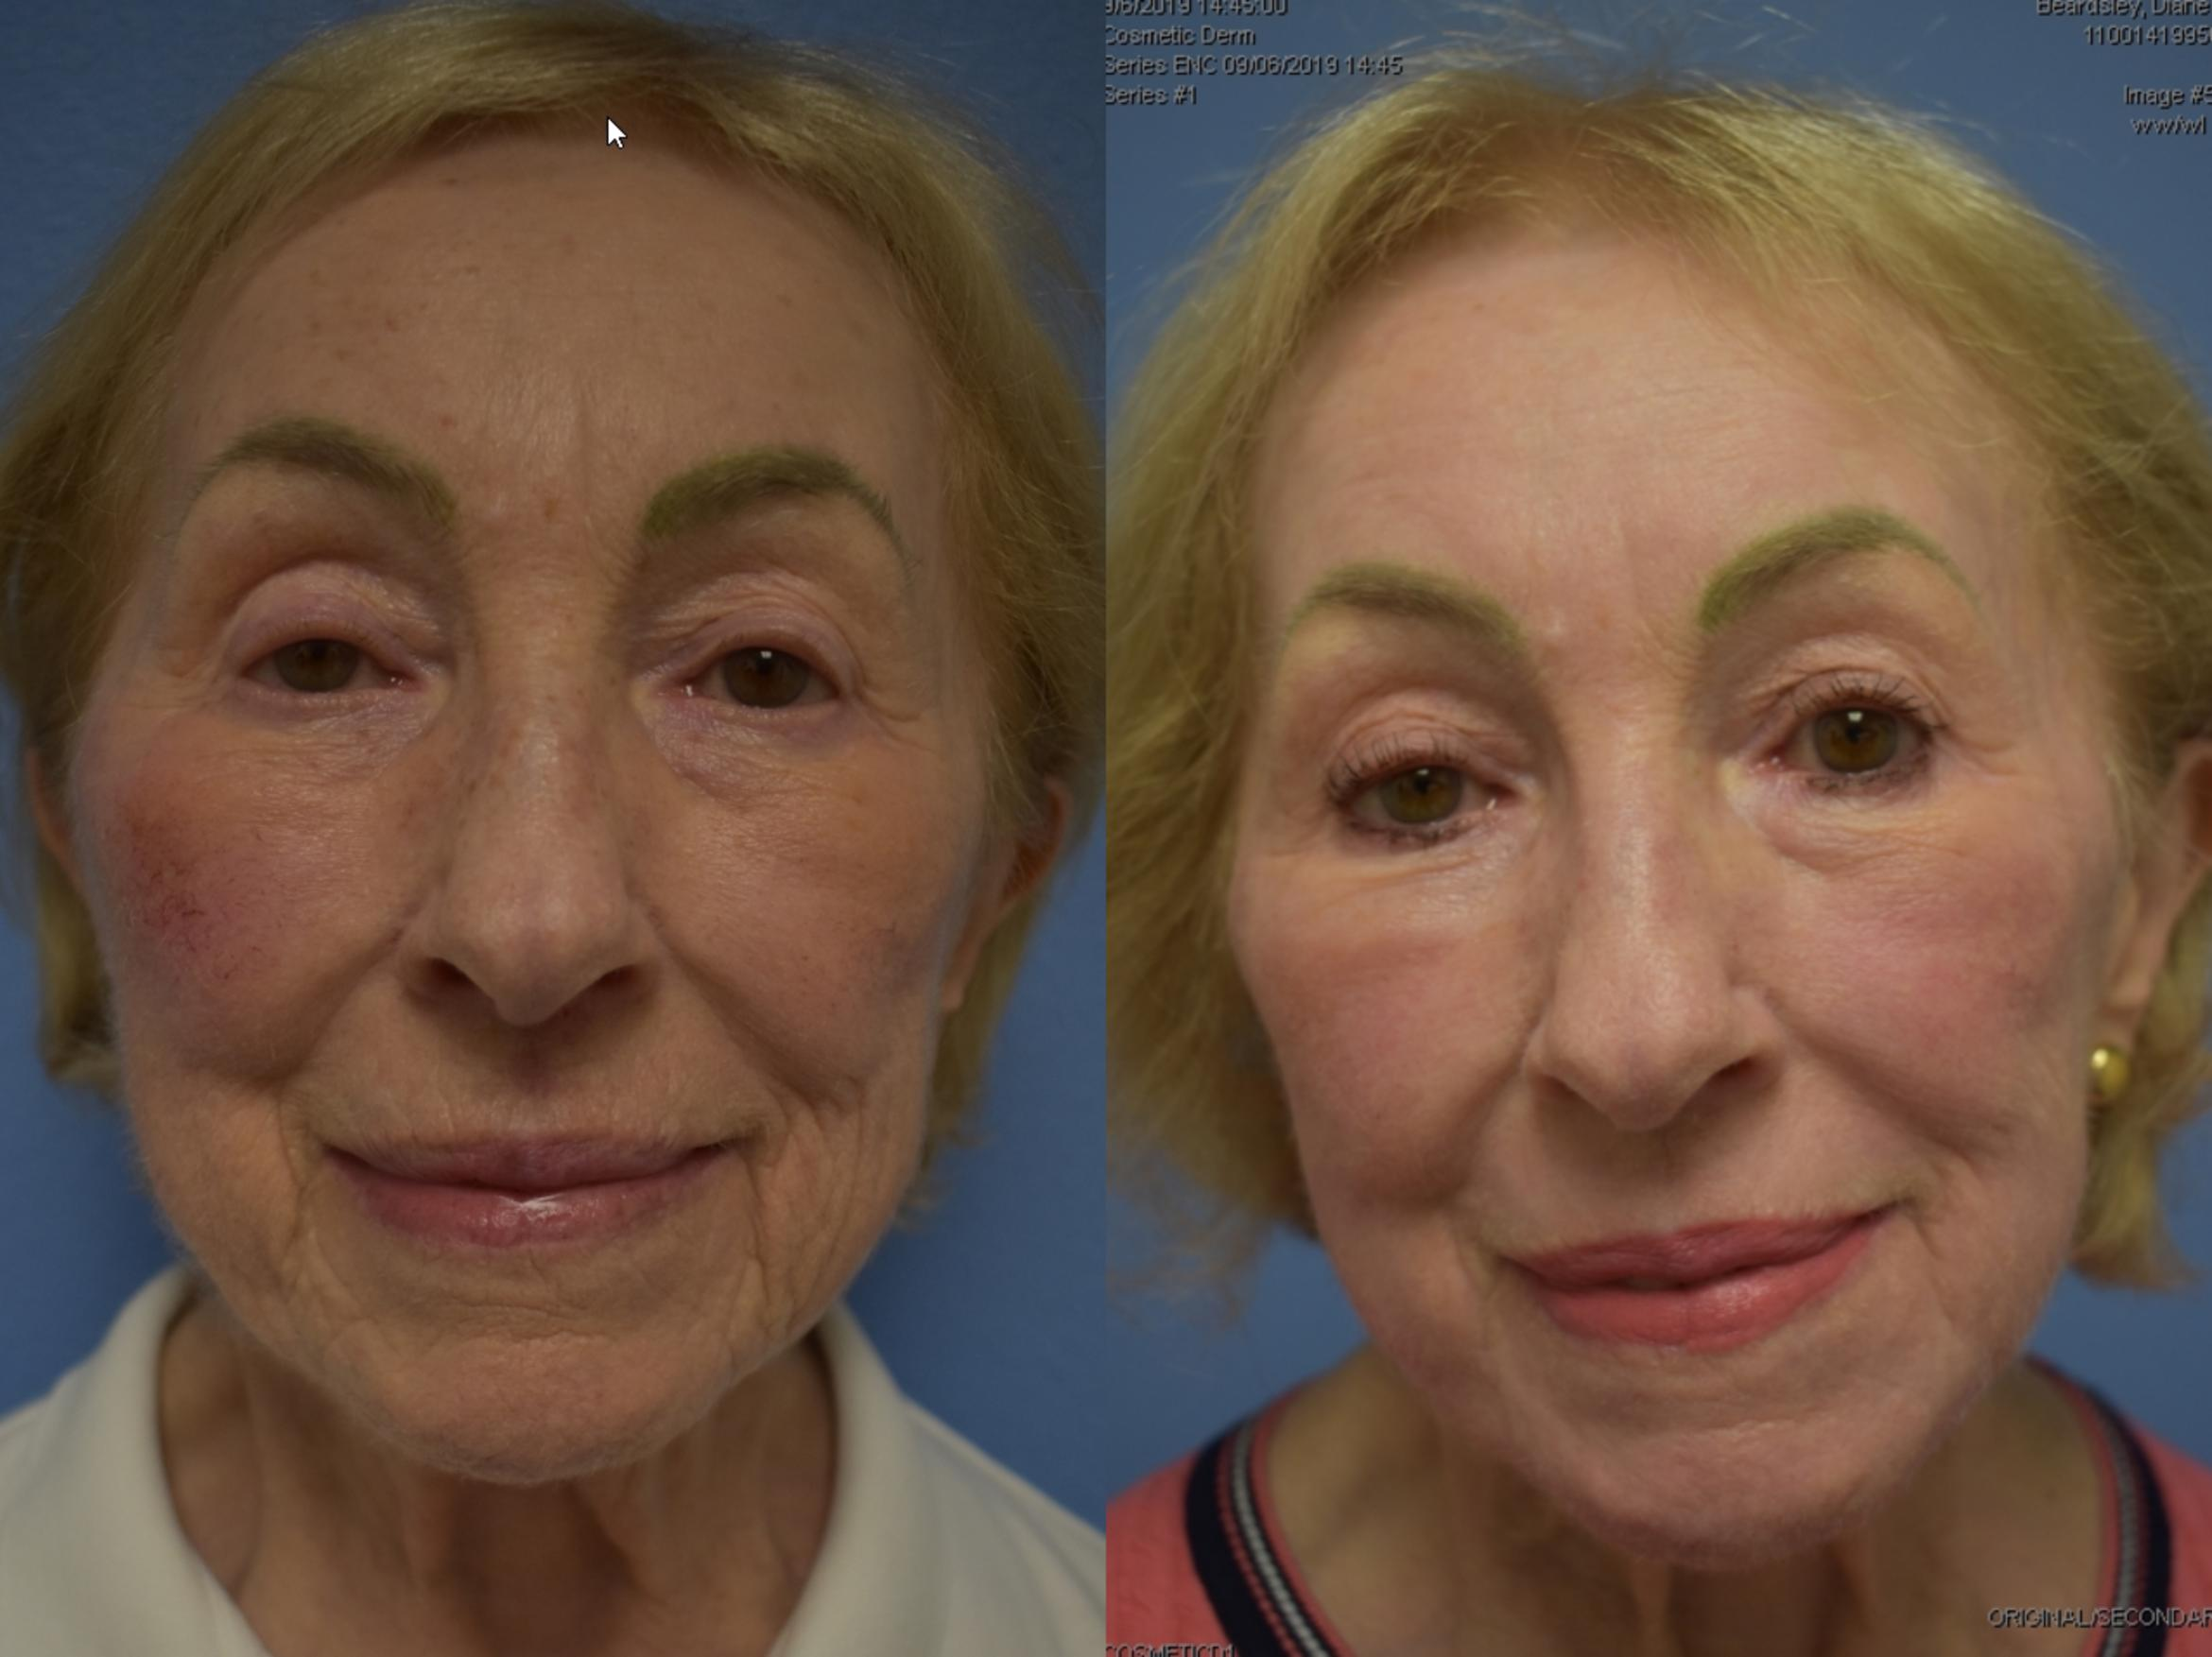 Fraxel Re:Store Laser Treatment Before & After Photo | San Francisco, CA | Kaiser Permanente Cosmetic Services